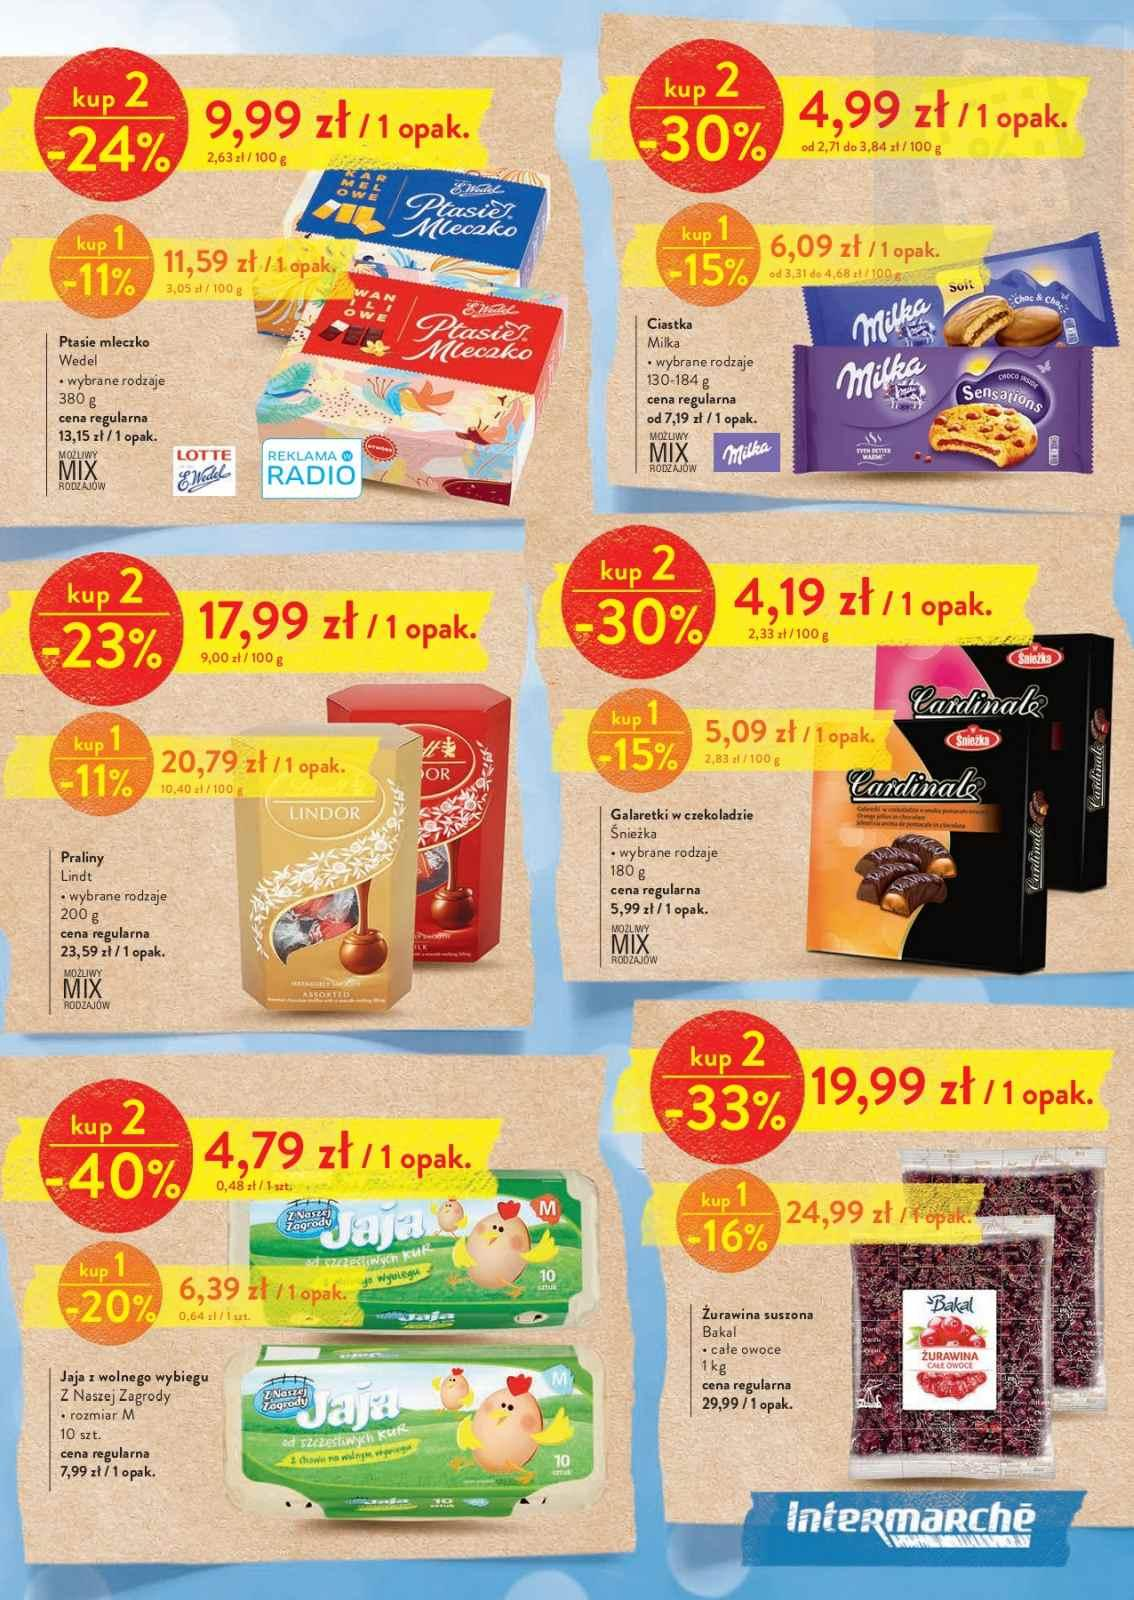 Gazetka promocyjna Intermarche do 07/10/2019 str.2